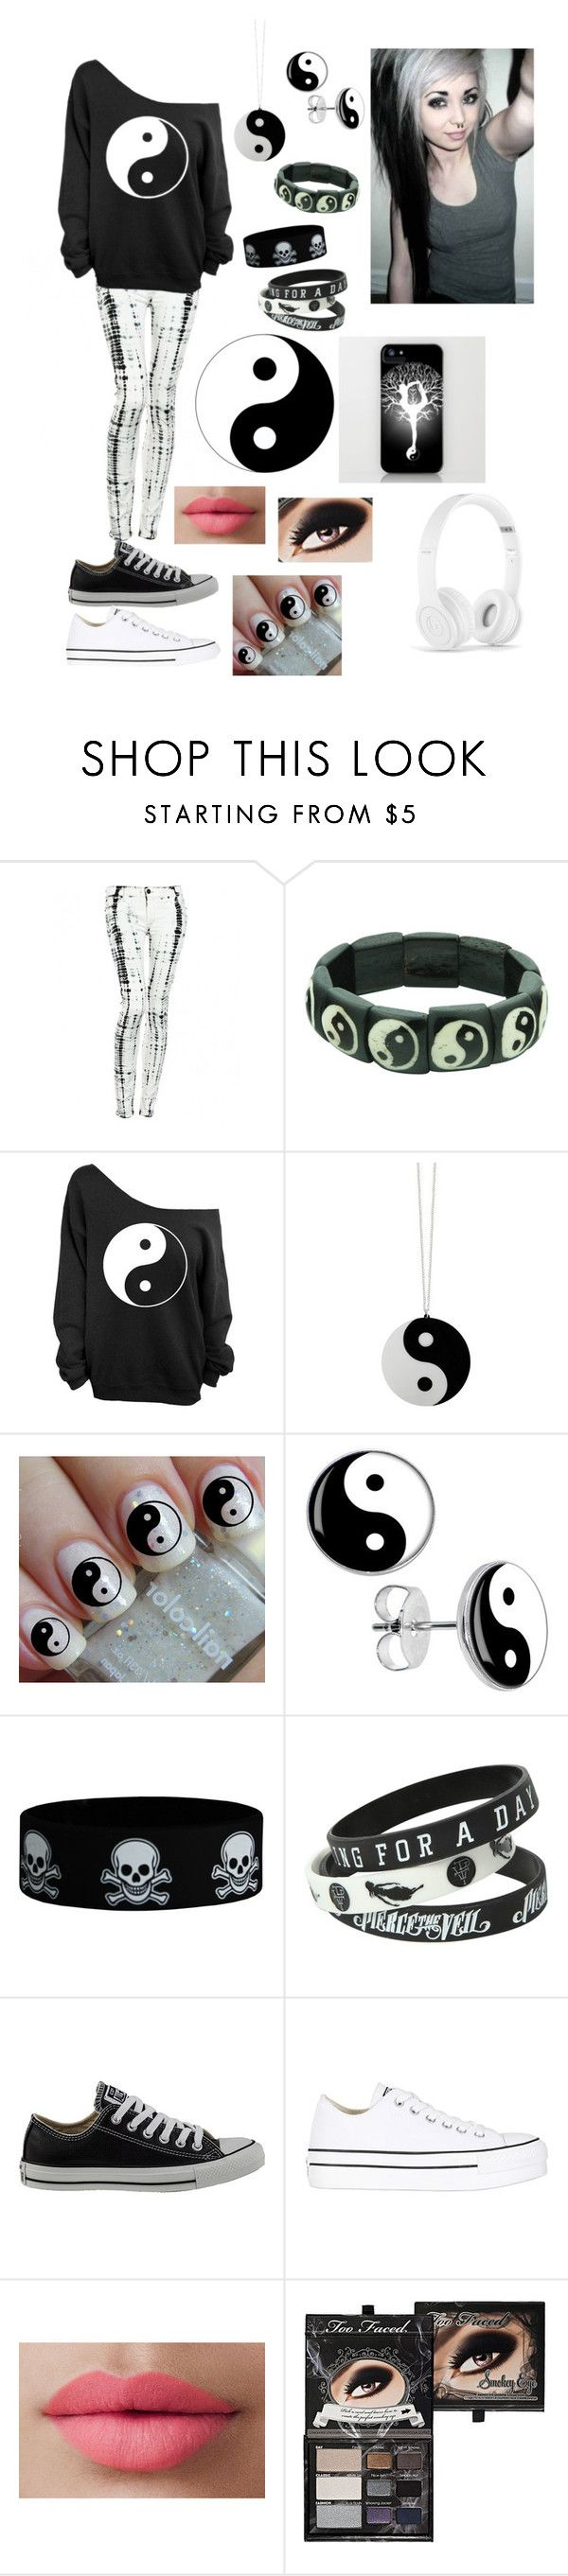 Yin yang by skygrace02 ❤ liked on Polyvore featuring Hudson Jeans, Converse, LORAC, Too Faced Cosmetics, Beats by Dr. Dre, white, black, emo and yinyang